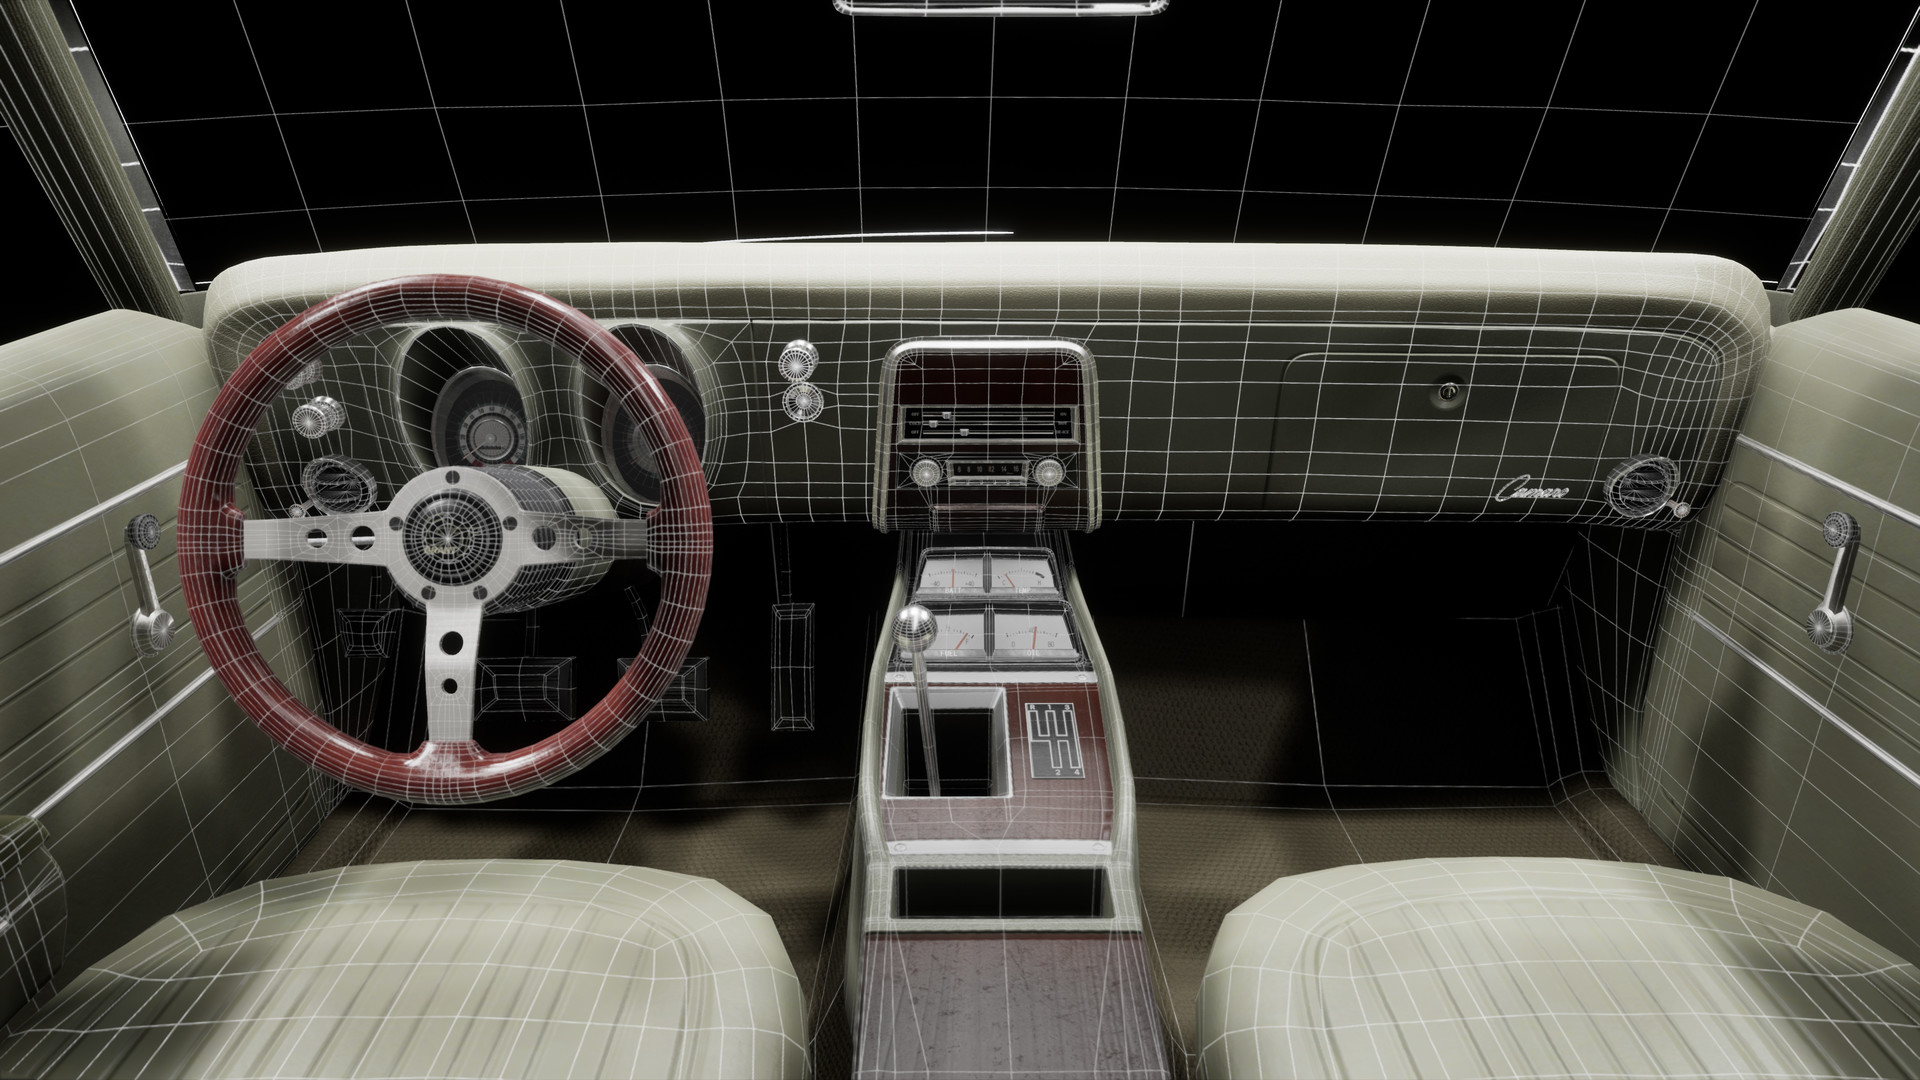 Steven m turner interior wireframe 5